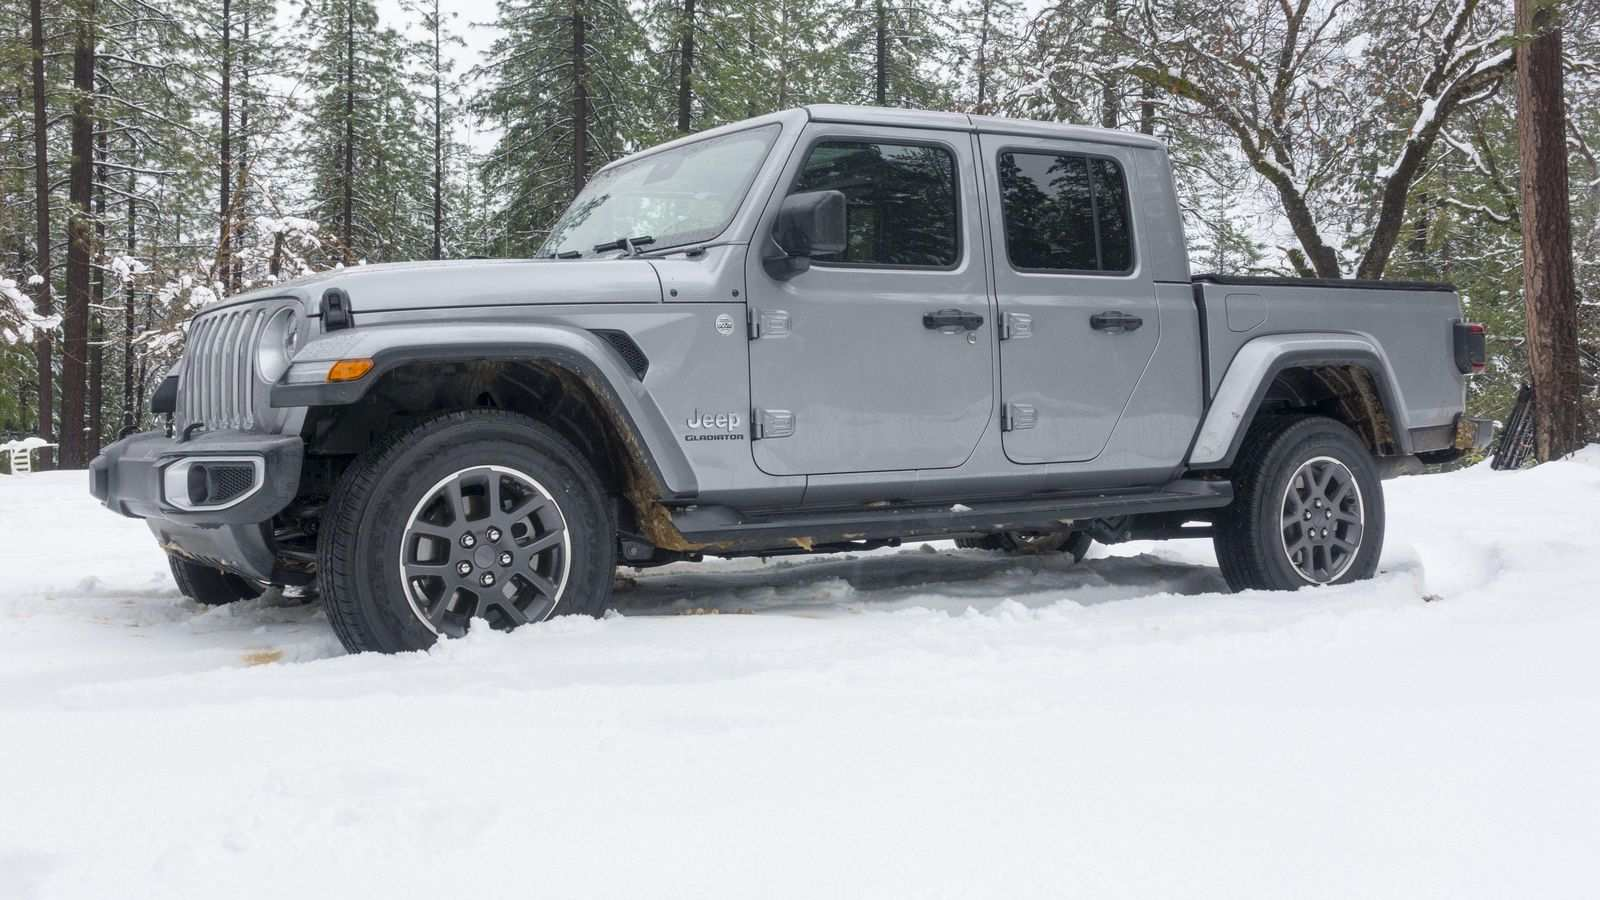 66 All New What Is The Price Of The 2020 Jeep Gladiator Release for What Is The Price Of The 2020 Jeep Gladiator